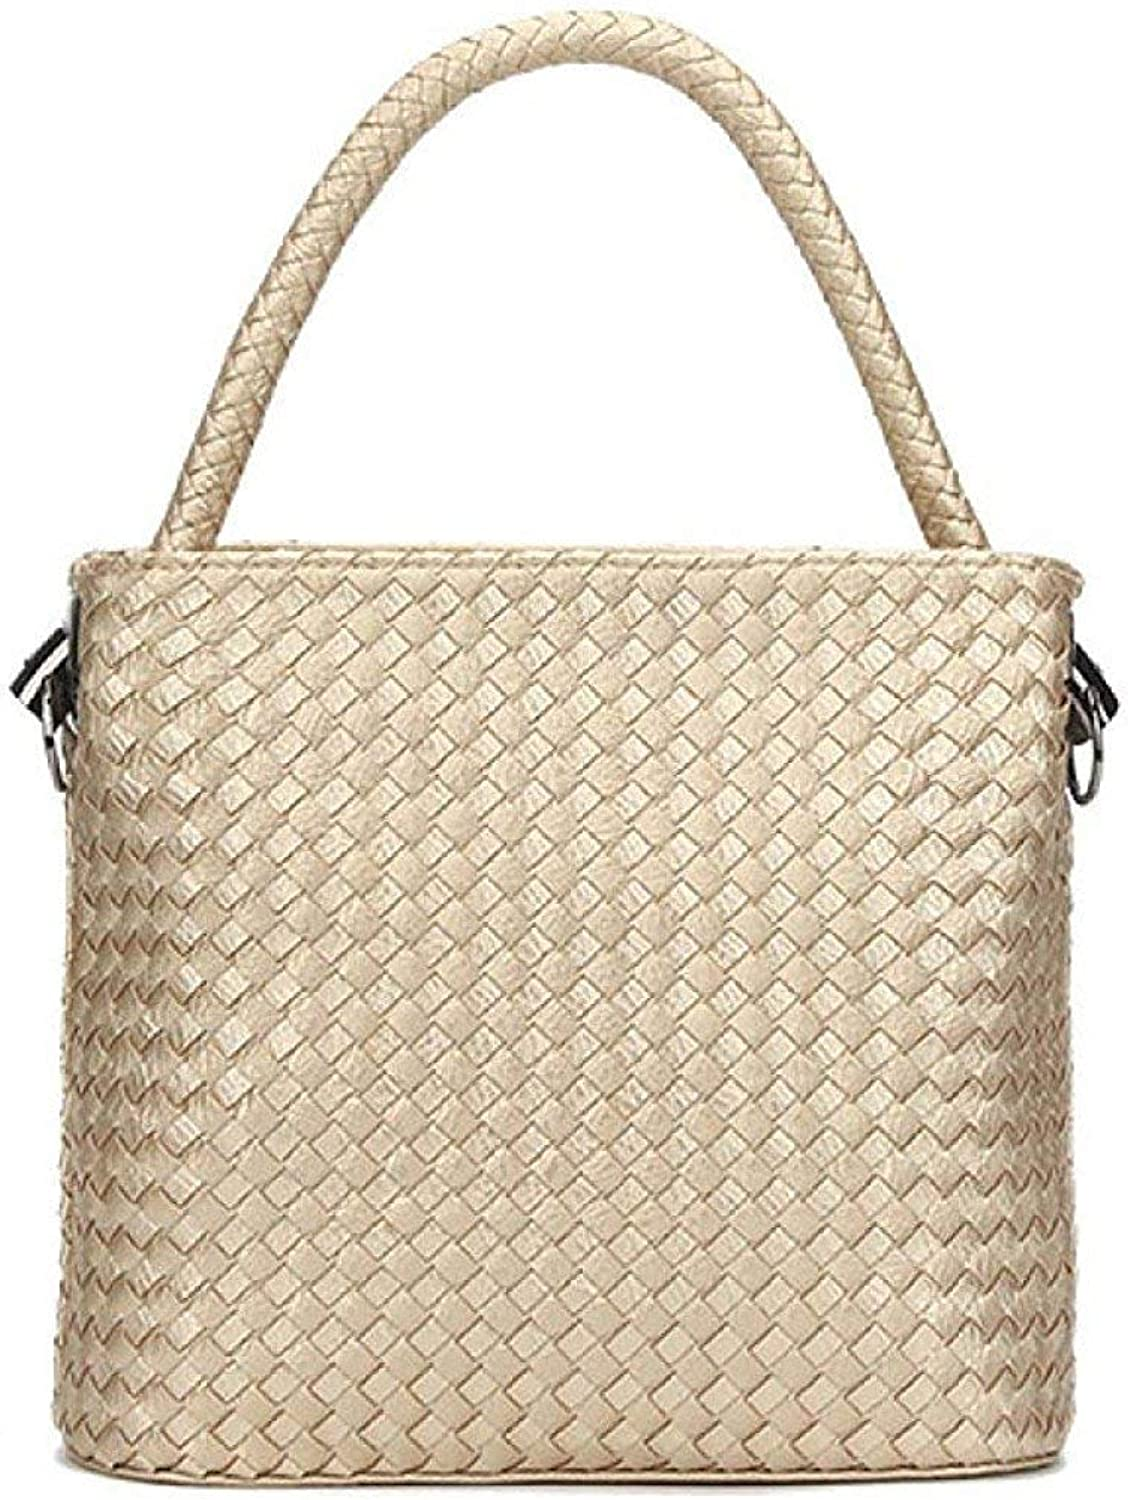 GHANDG Handbag Purse Shoulder Bag Spring and Summer Ladies Korean Version Fashion Woven Bag Messenger Bag Bucket Bag Clutch Bag (color   A, Size   One Size)